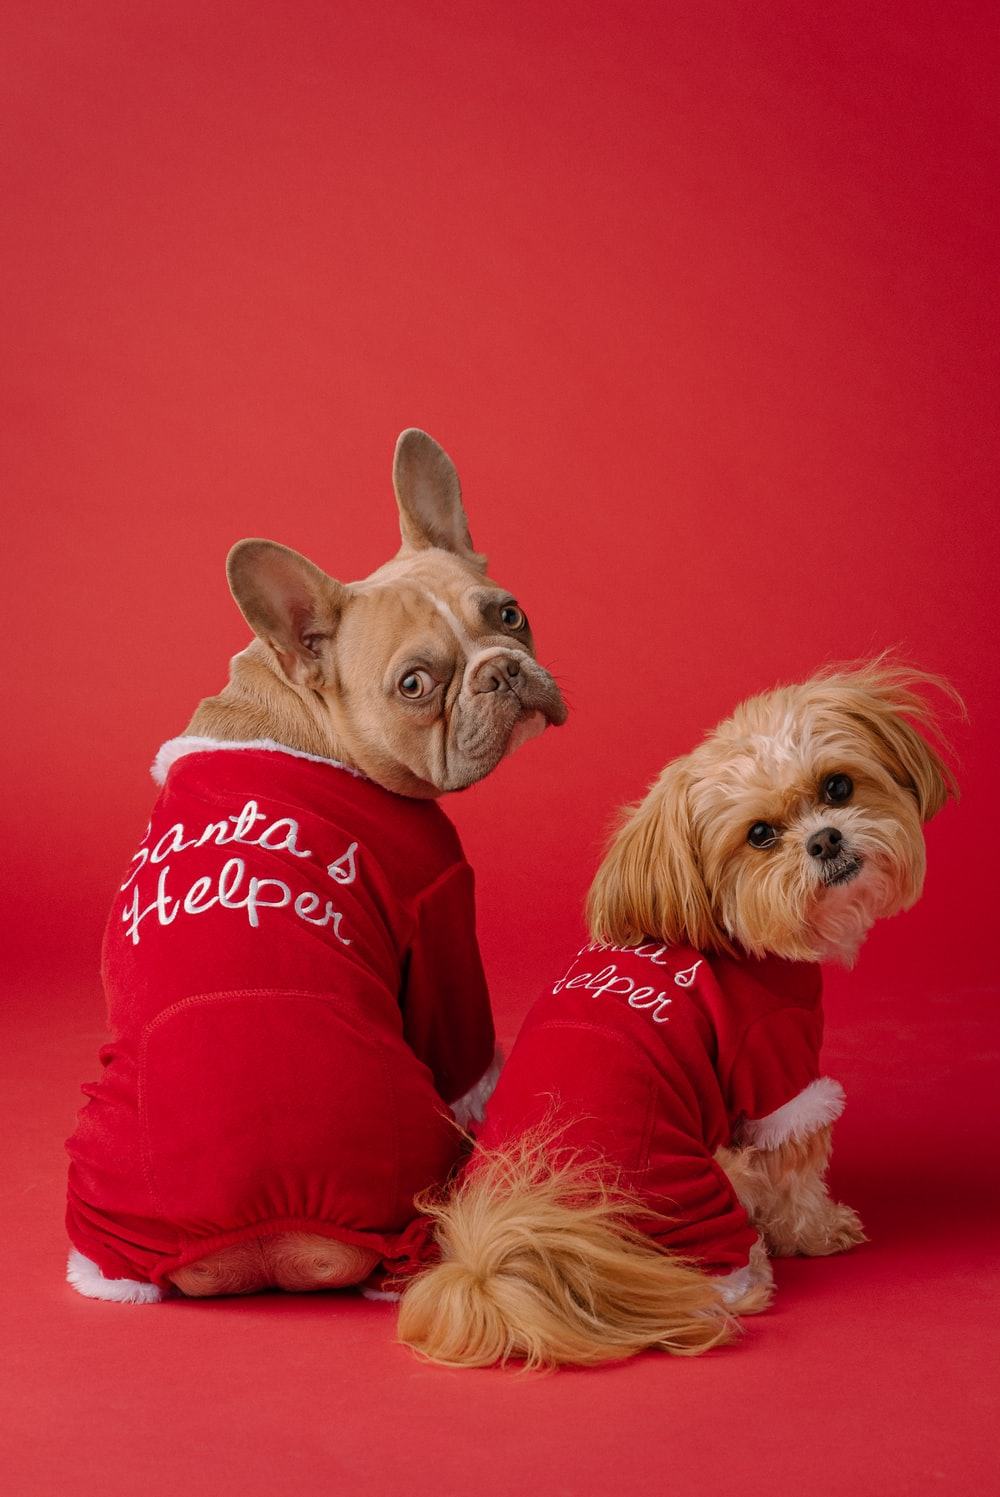 brown and white long coated small dog wearing red shirt